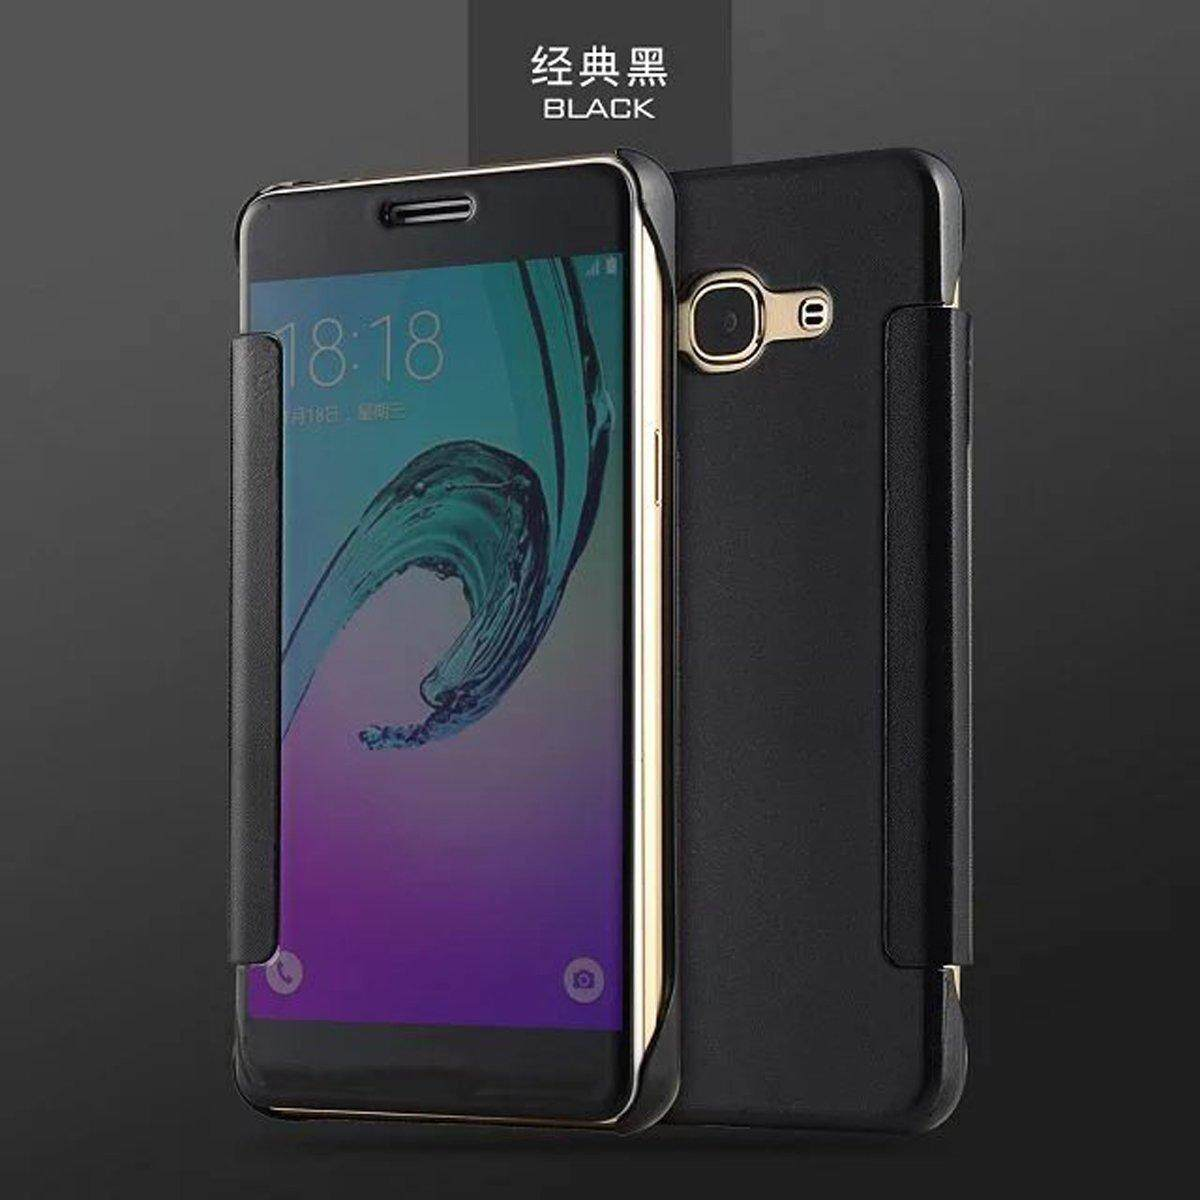 Detail Gambar For Samsung Galaxy J3 2016 / J3 Pro Plating PC Mirror Flip Case Cover with Smart View Terbaru